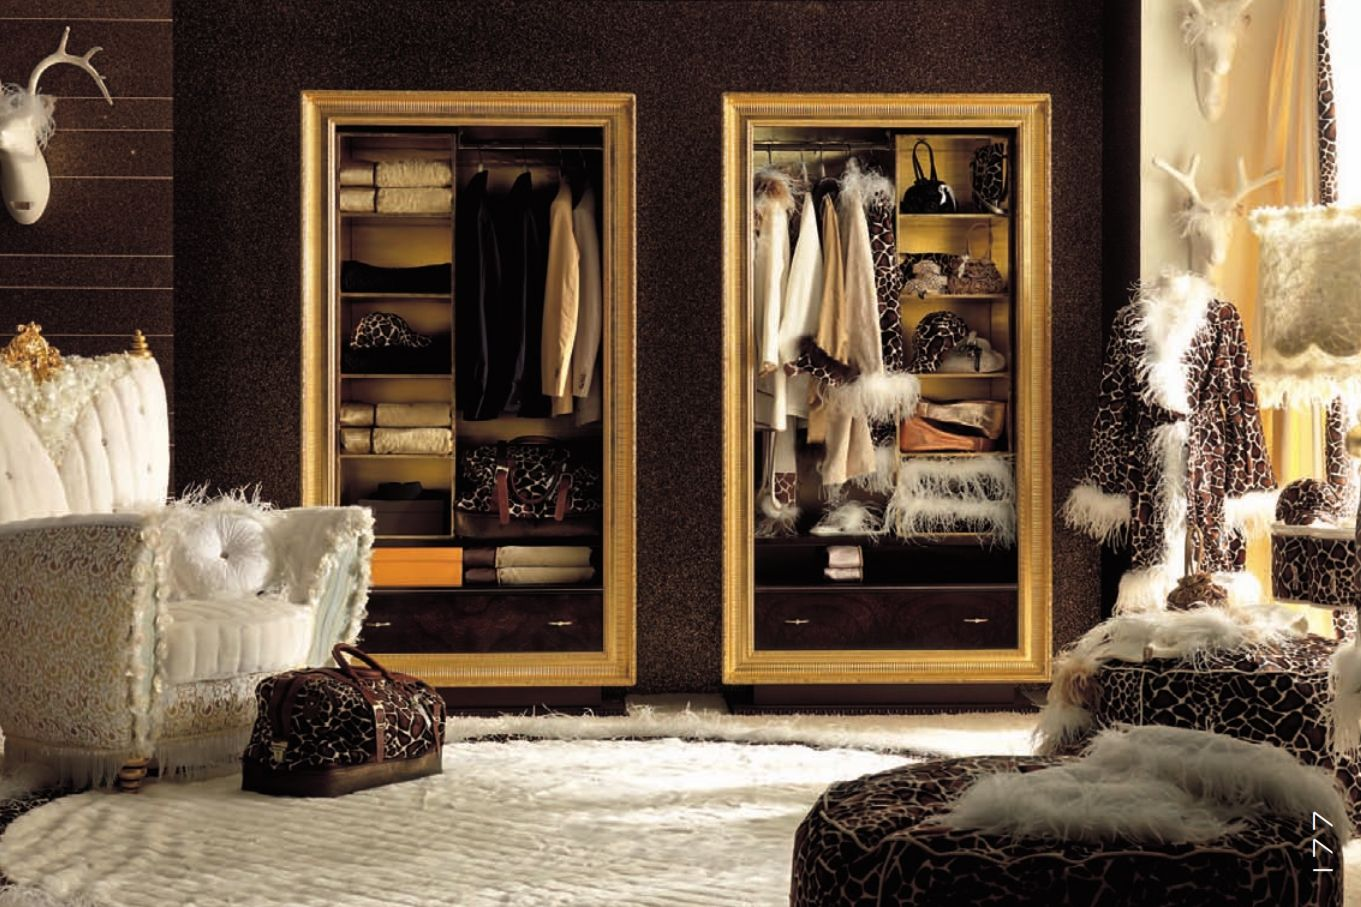 Luxurious Furniture Luxury Bedroom Alta Moda Chic